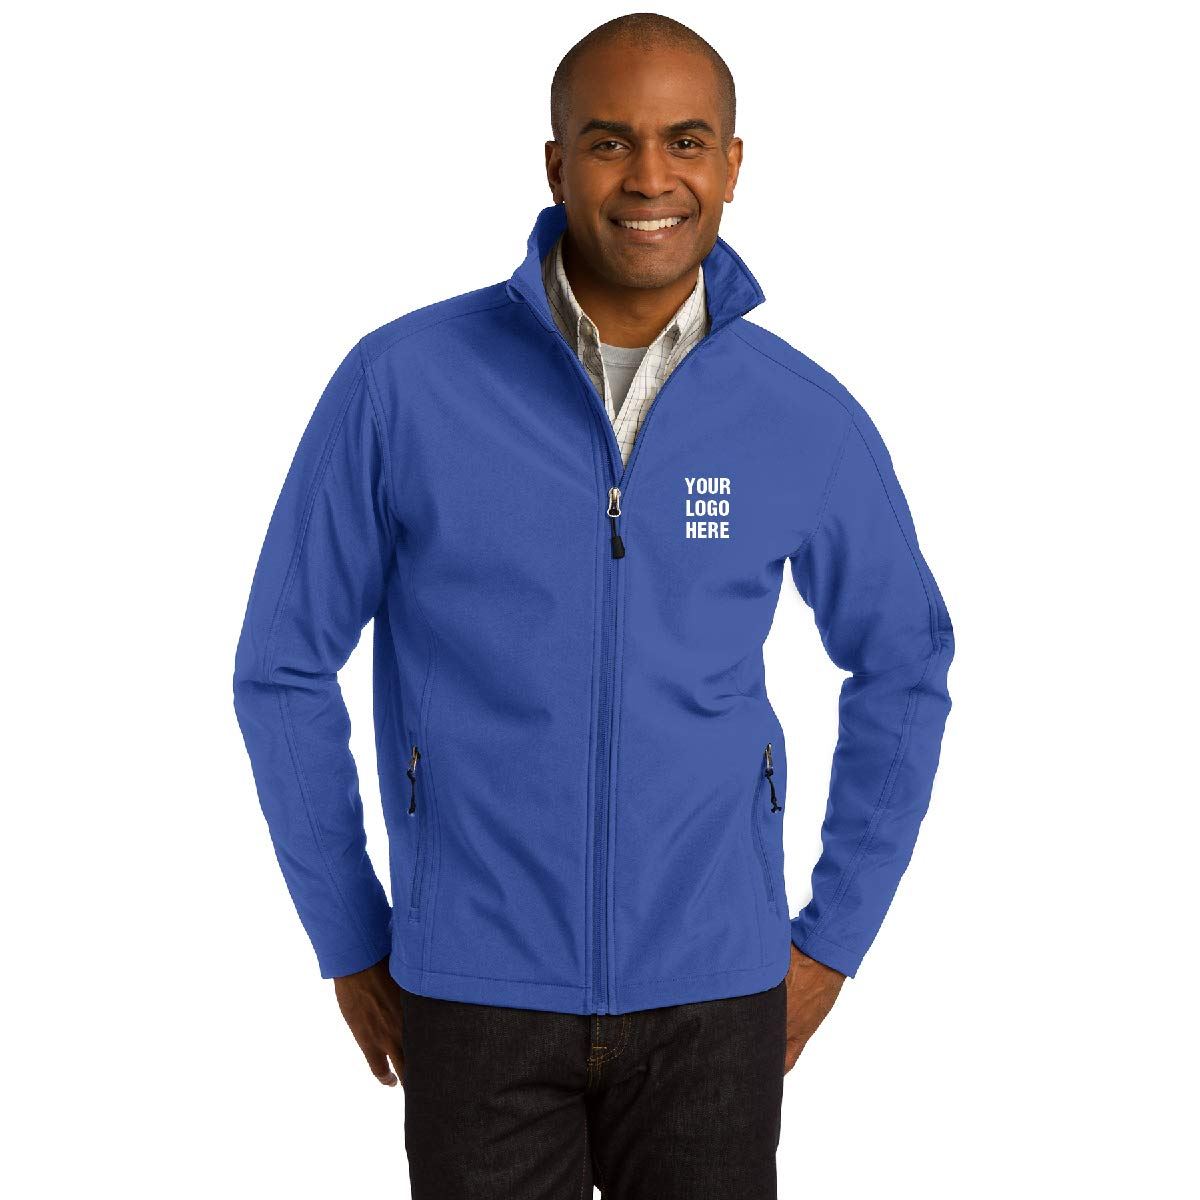 67.16 Each Promotional Jacket with Your Logo Core Soft Shell Jacket 6 Qty